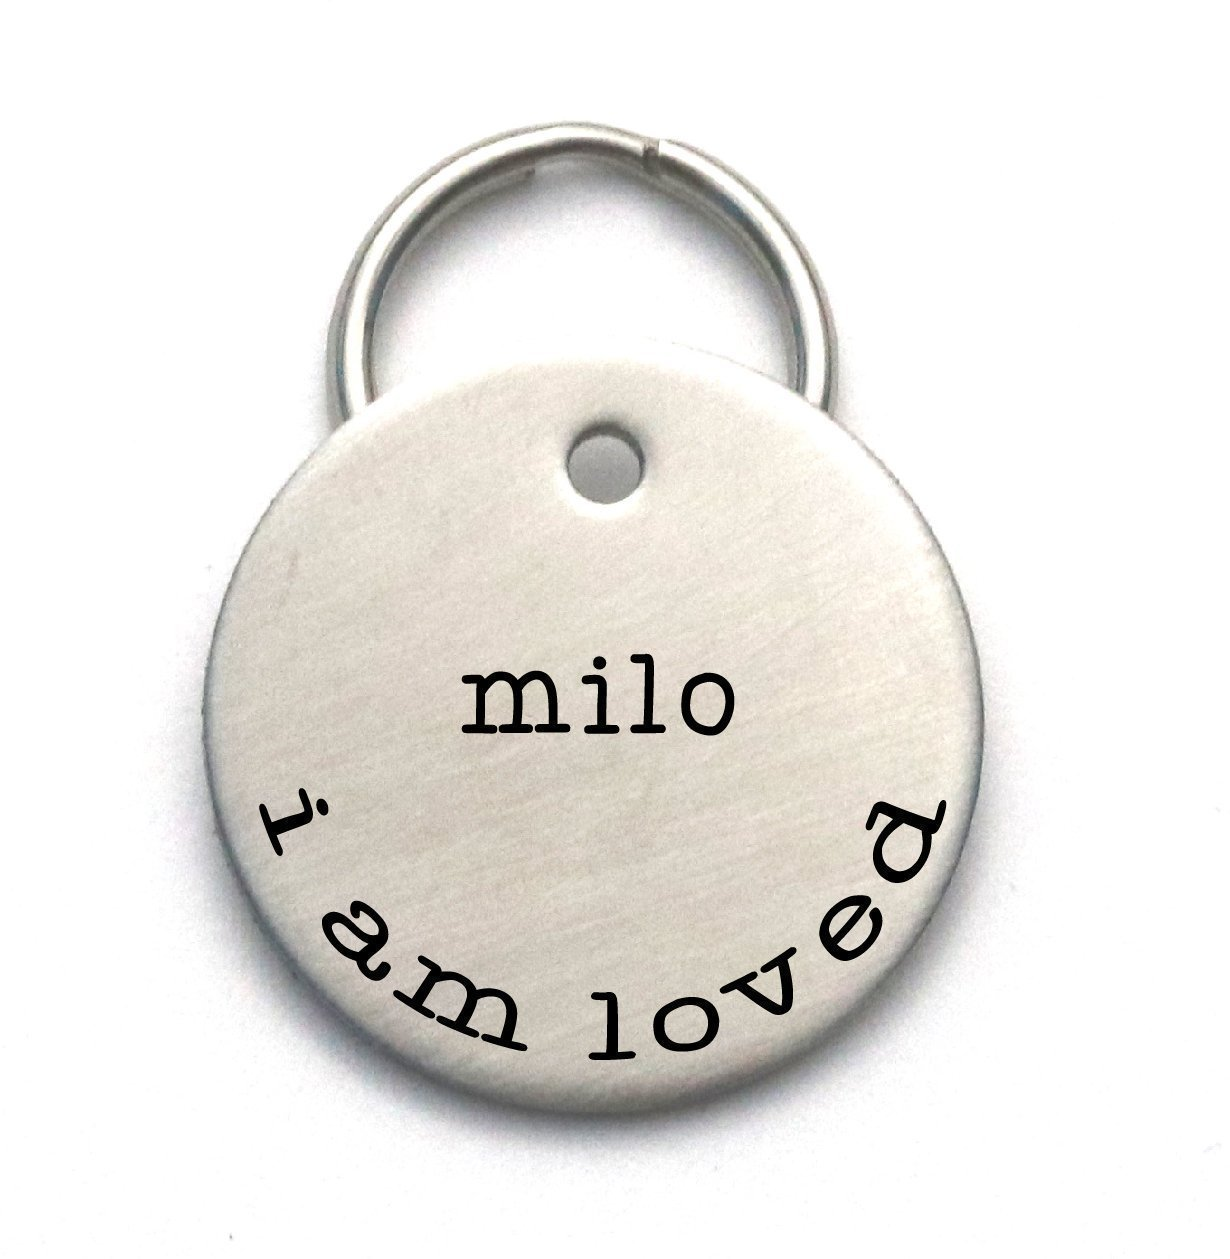 Simple Dog Tag Customized With Your Pet's Name and Phone, I am Loved - Engraved Metal ID - Cute